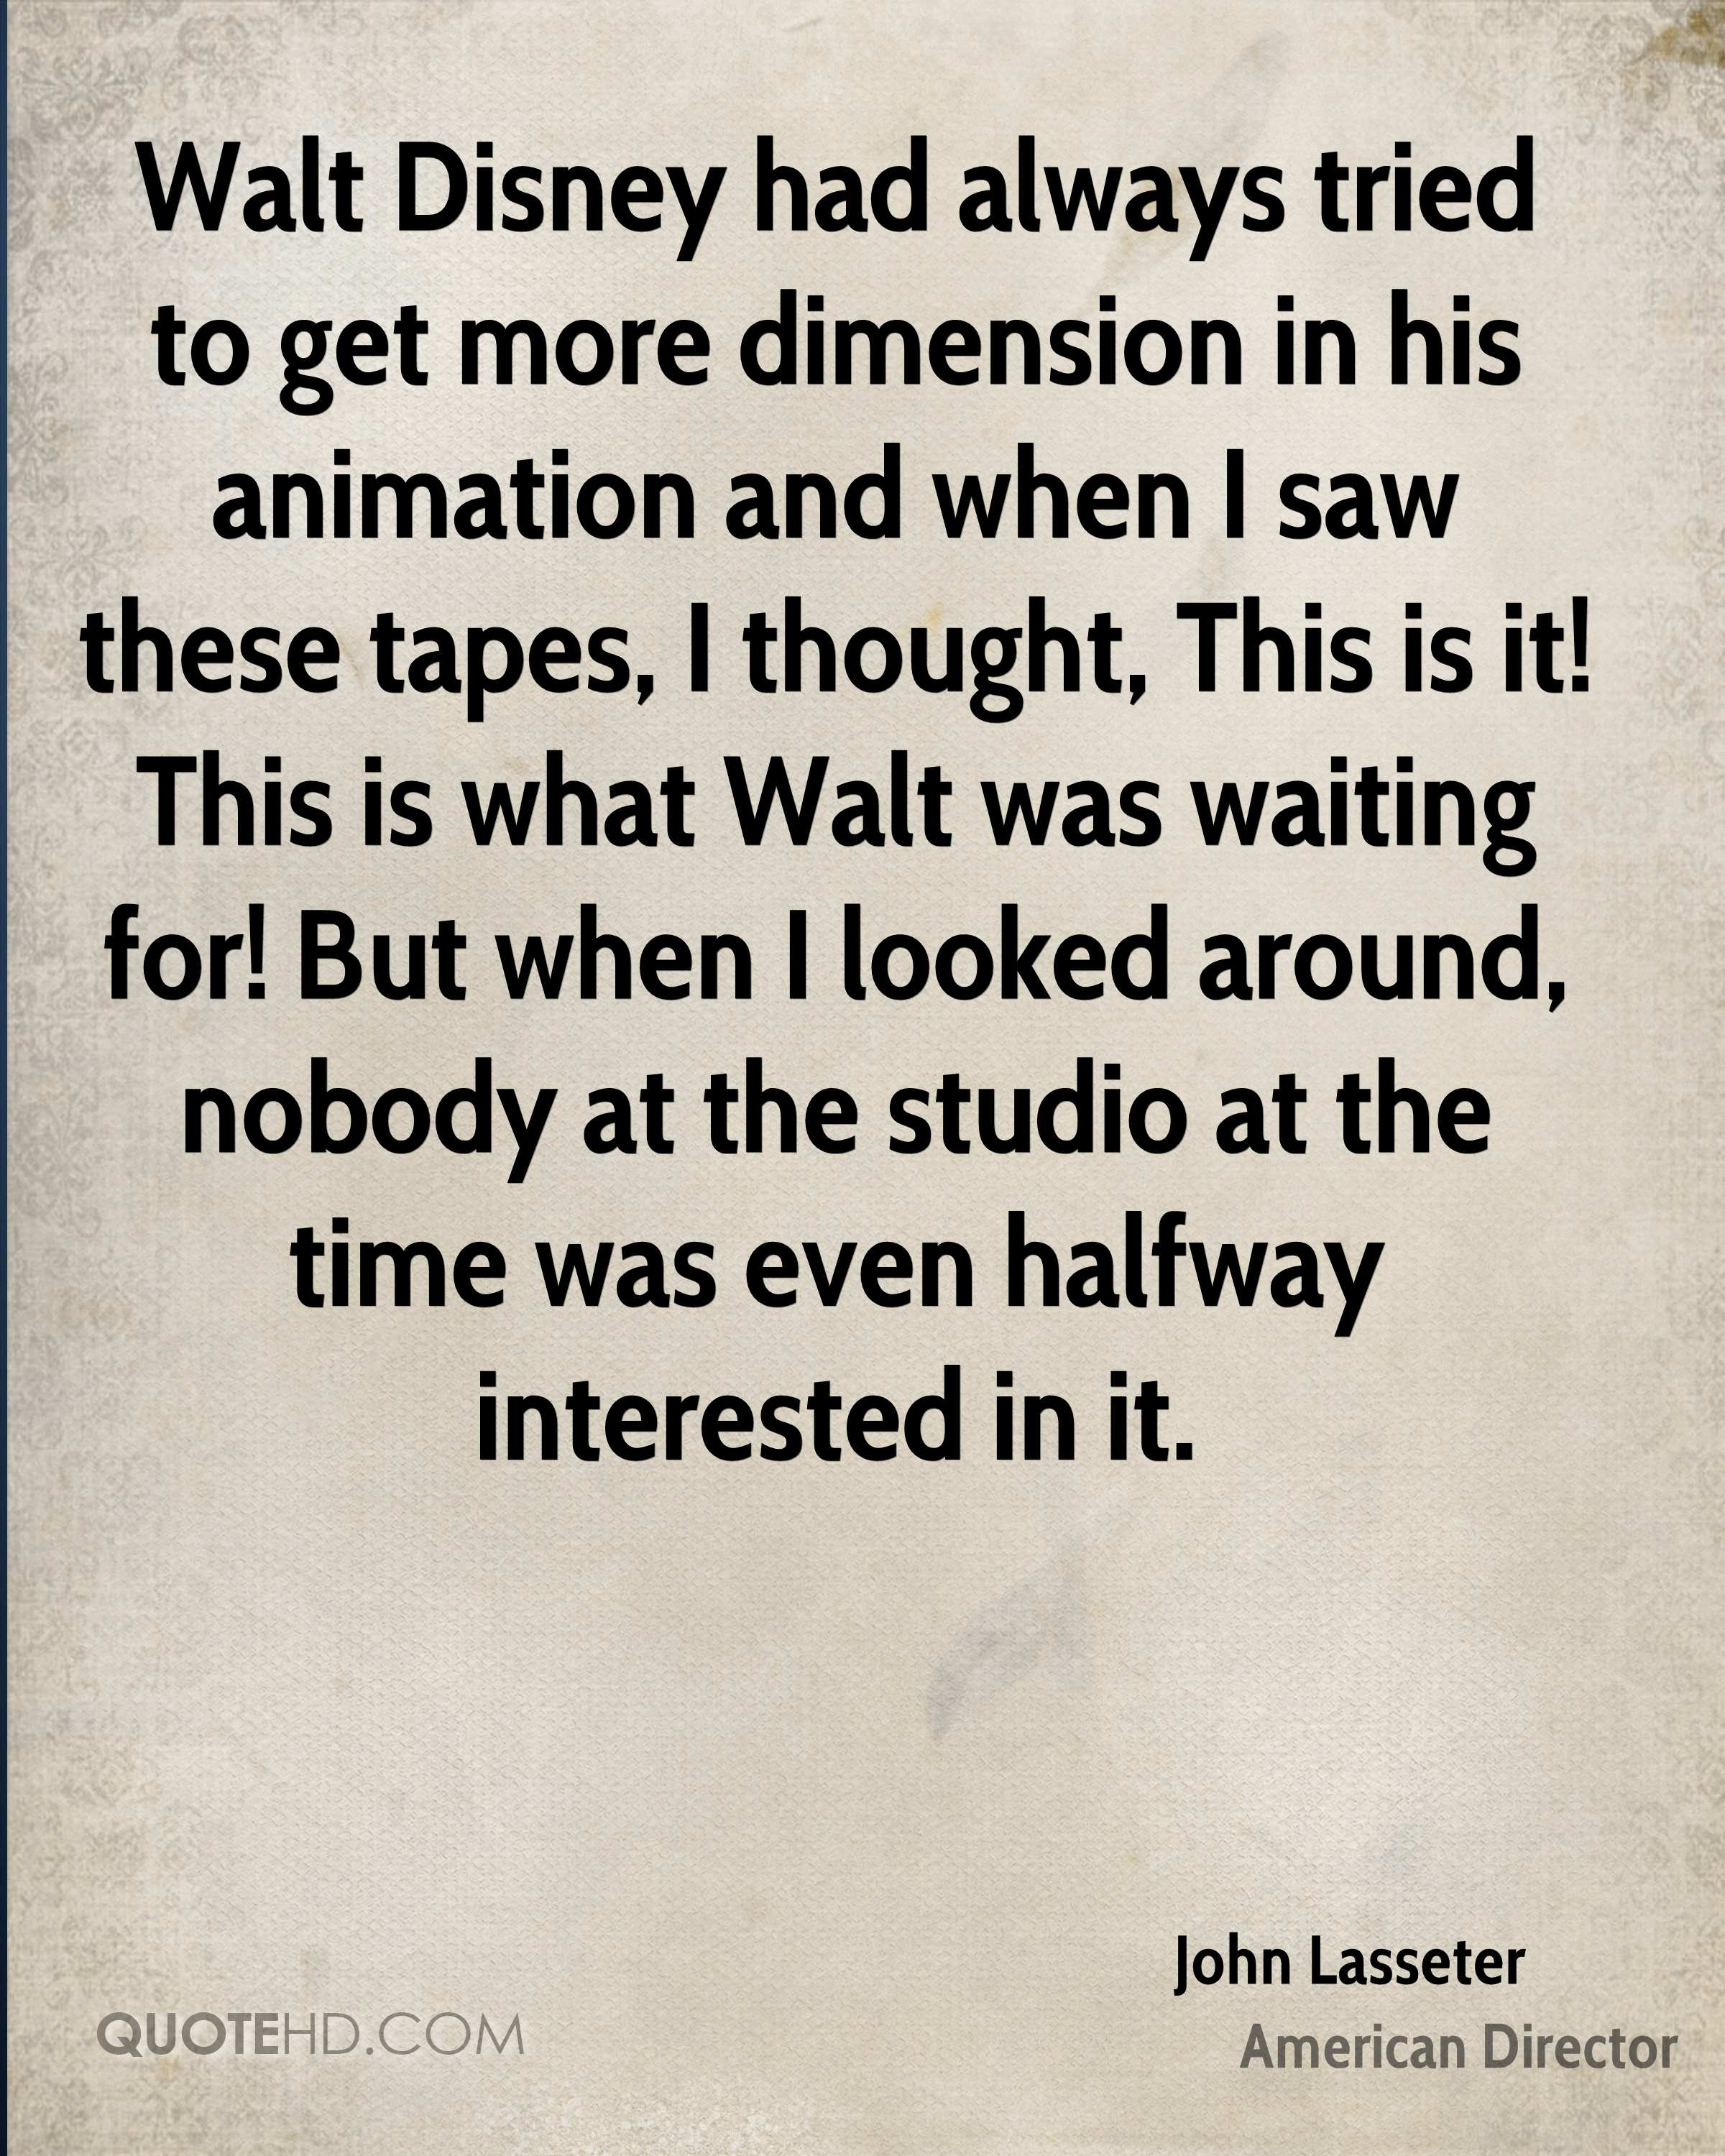 Walt Disney had always tried to get more dimension in his animation and when I saw these tapes, I thought, This is it! This is what Walt was waiting for! But when I looked around, nobody at the studio at the time was even halfway interested in it.